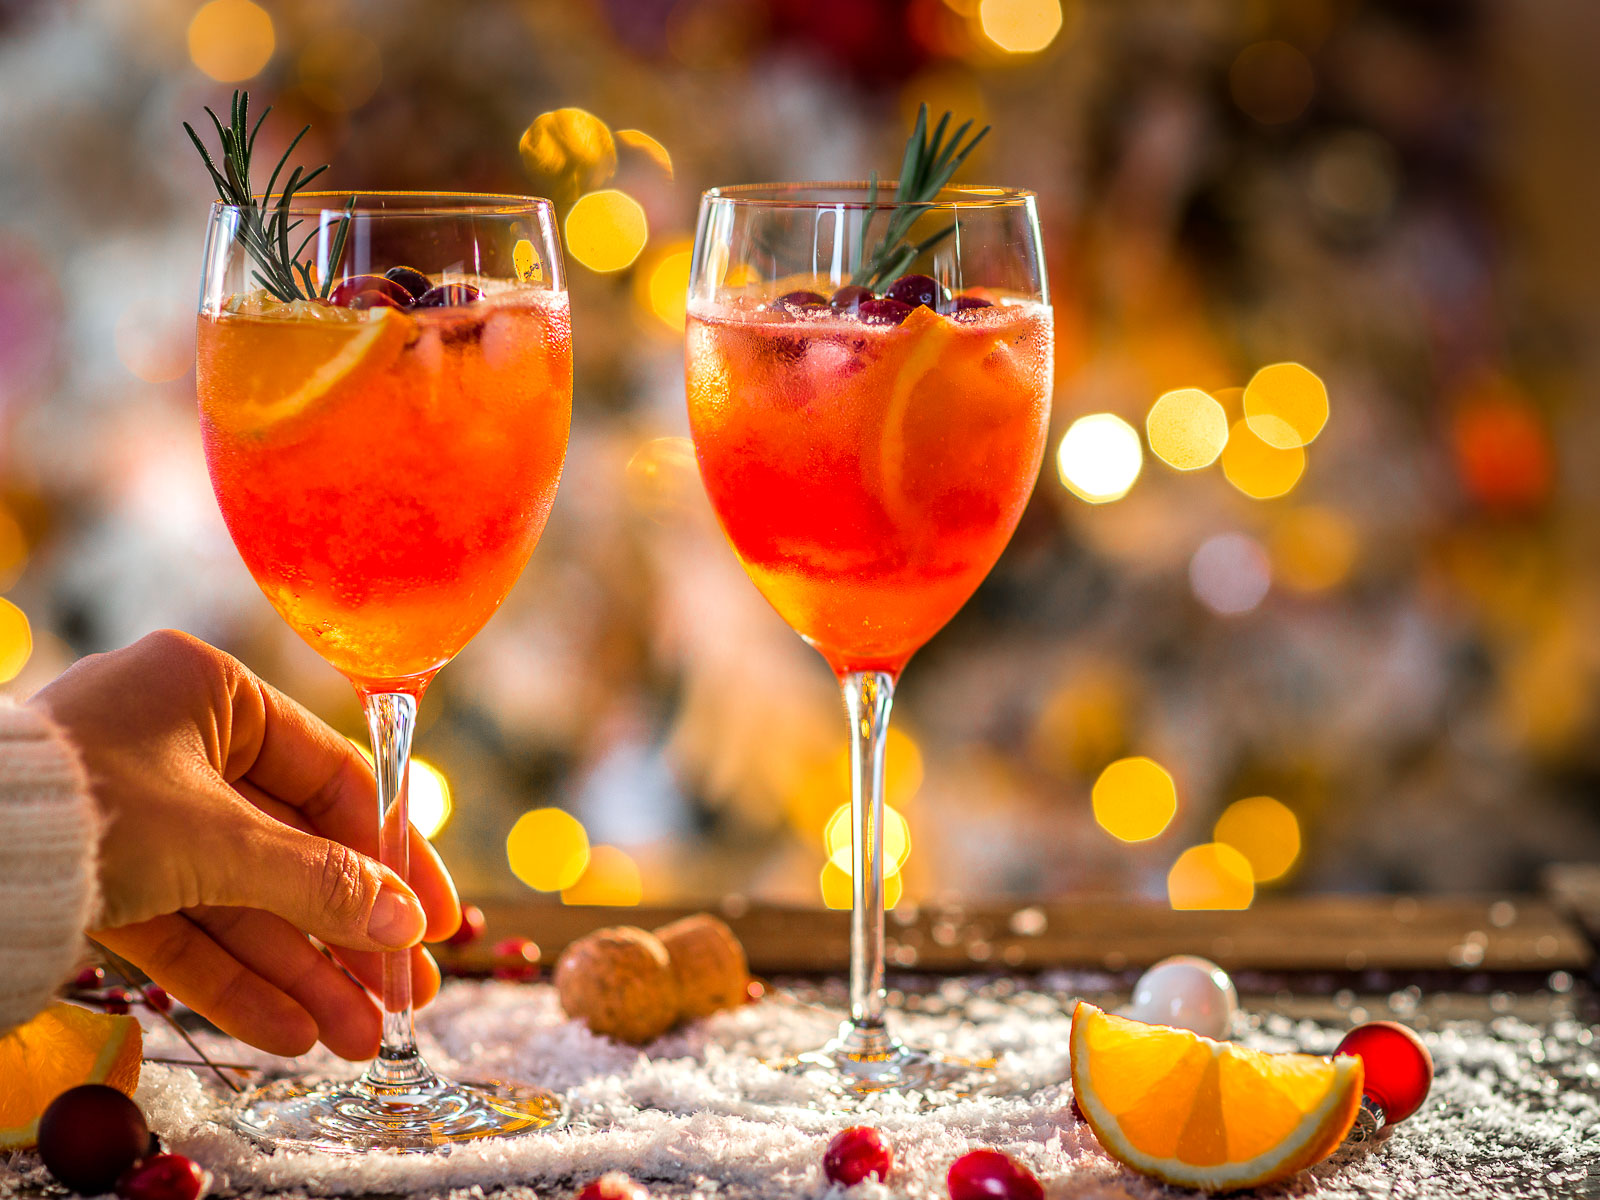 Ricetta SPRITZ di NATALE con succo di arance e cranberry mirtilli rossi Winter Holiday Christmas Spritzer recipe vegan buon Natale Merry Christmas photography